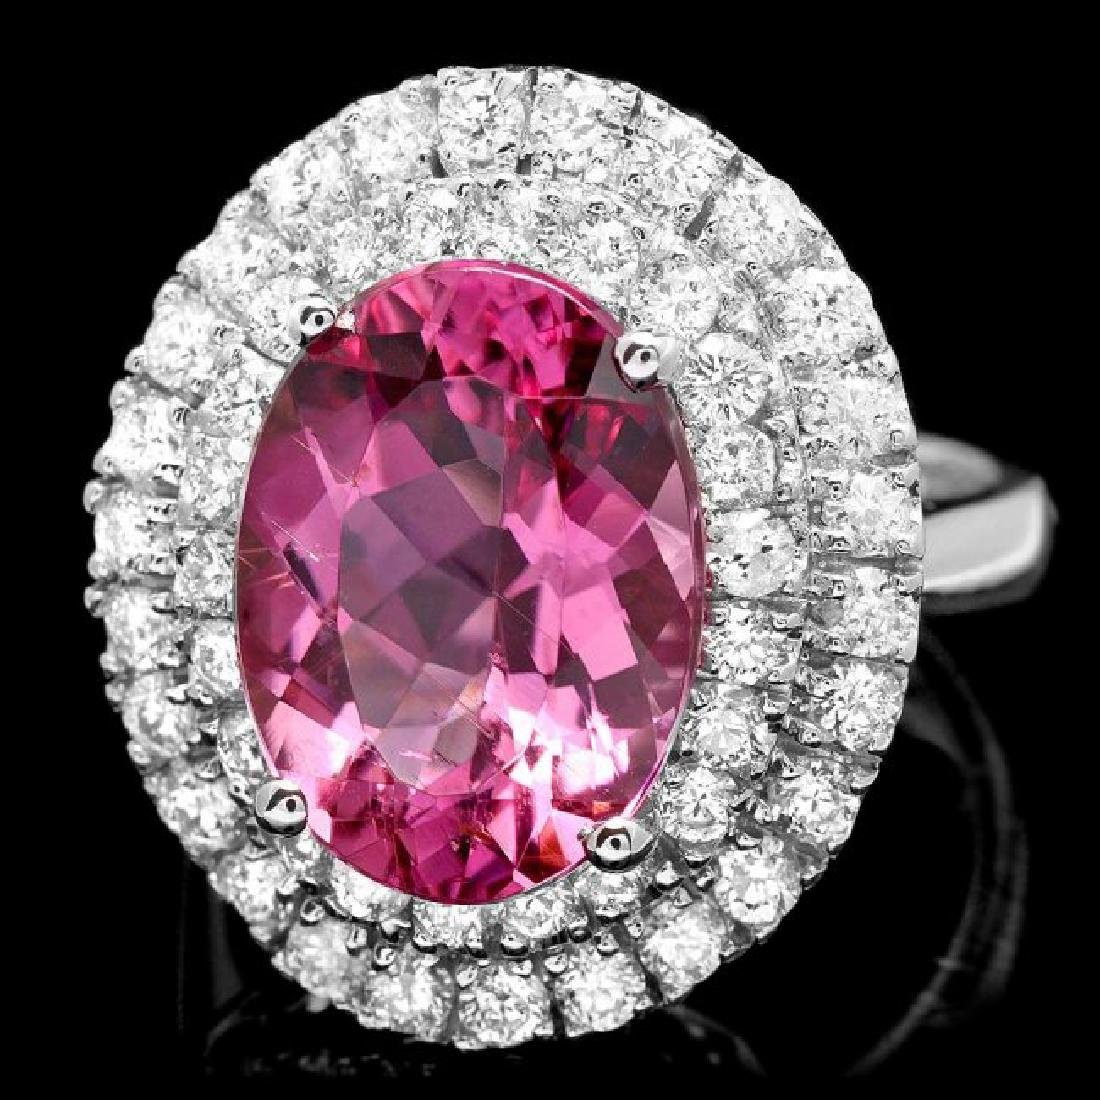 14k Gold 6.55ct Tourmaline 1.45ct Diamond Ring